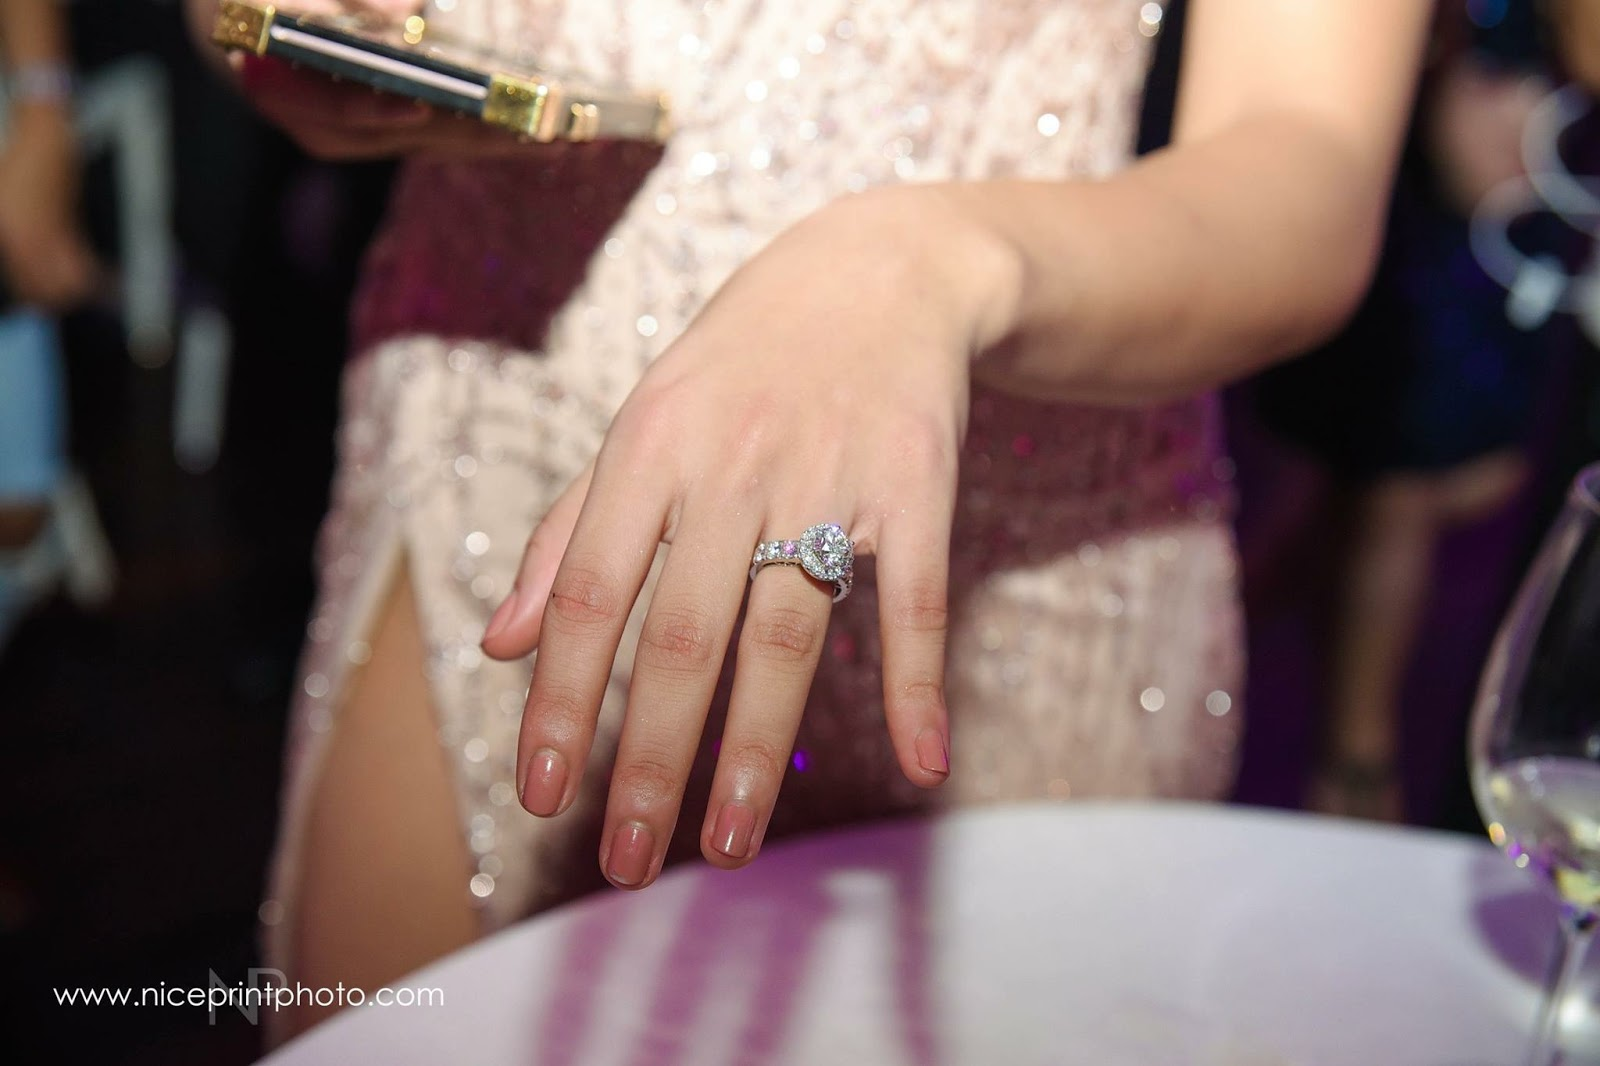 Sarah Lahbati's Engagement Ring At Closer View​